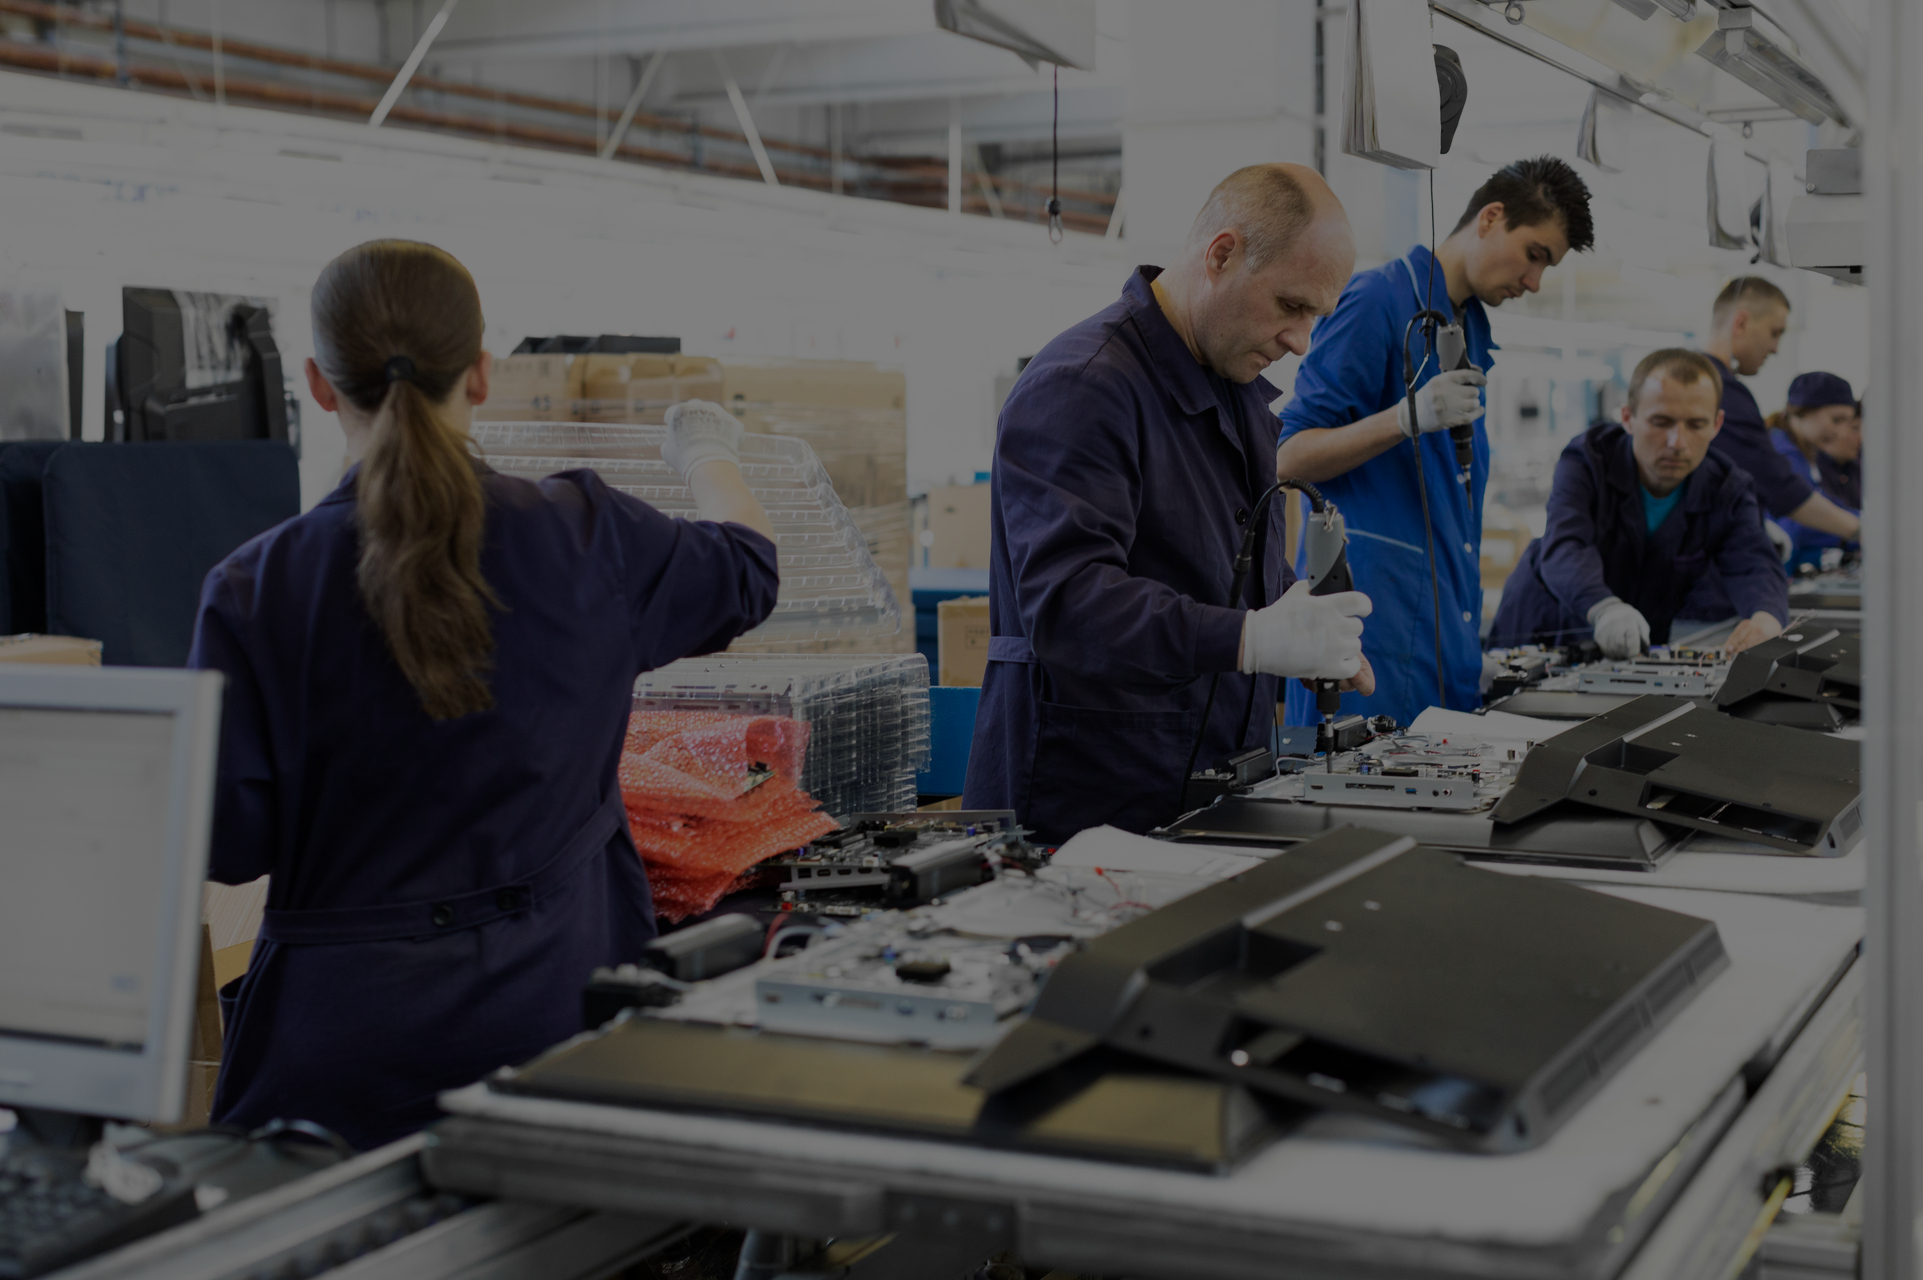 How To Fight and Win With Repetitive Strain, Poor Ergonomics and Poor Posture On Your Busy Production Line